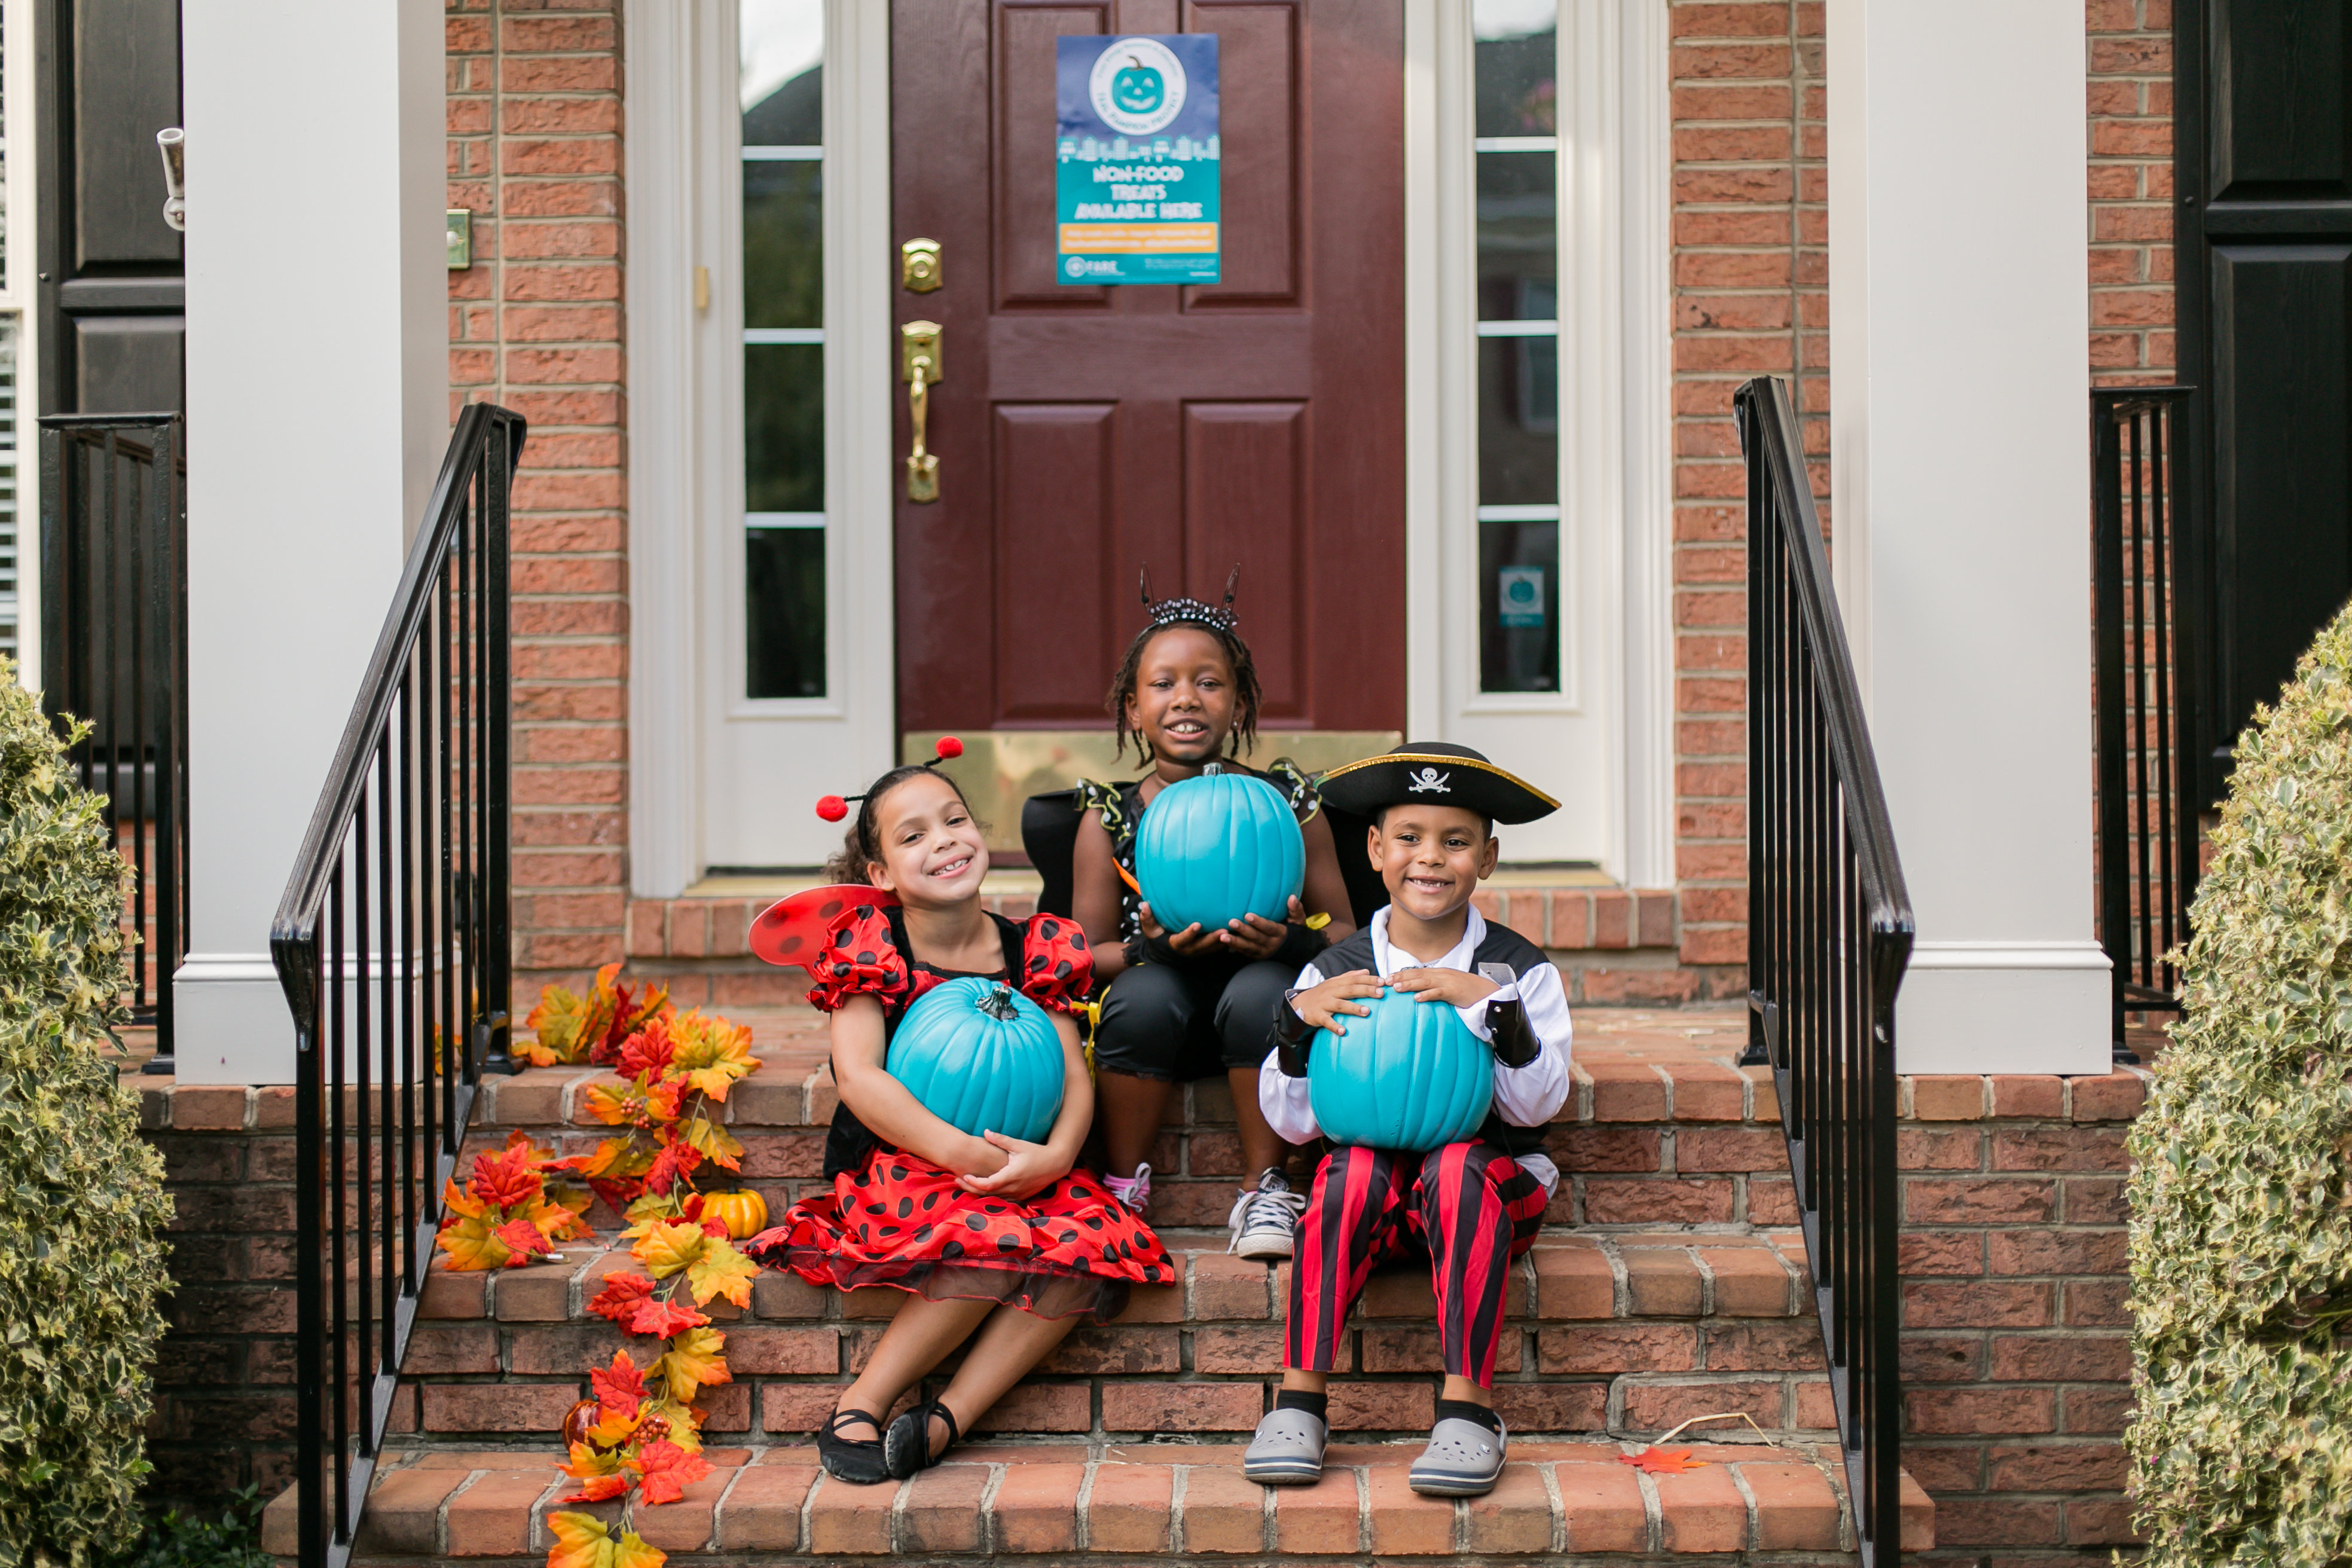 Three kids in Halloween costumes sit on the brick stoop of their home, all holding teal pumpkins on their lap.